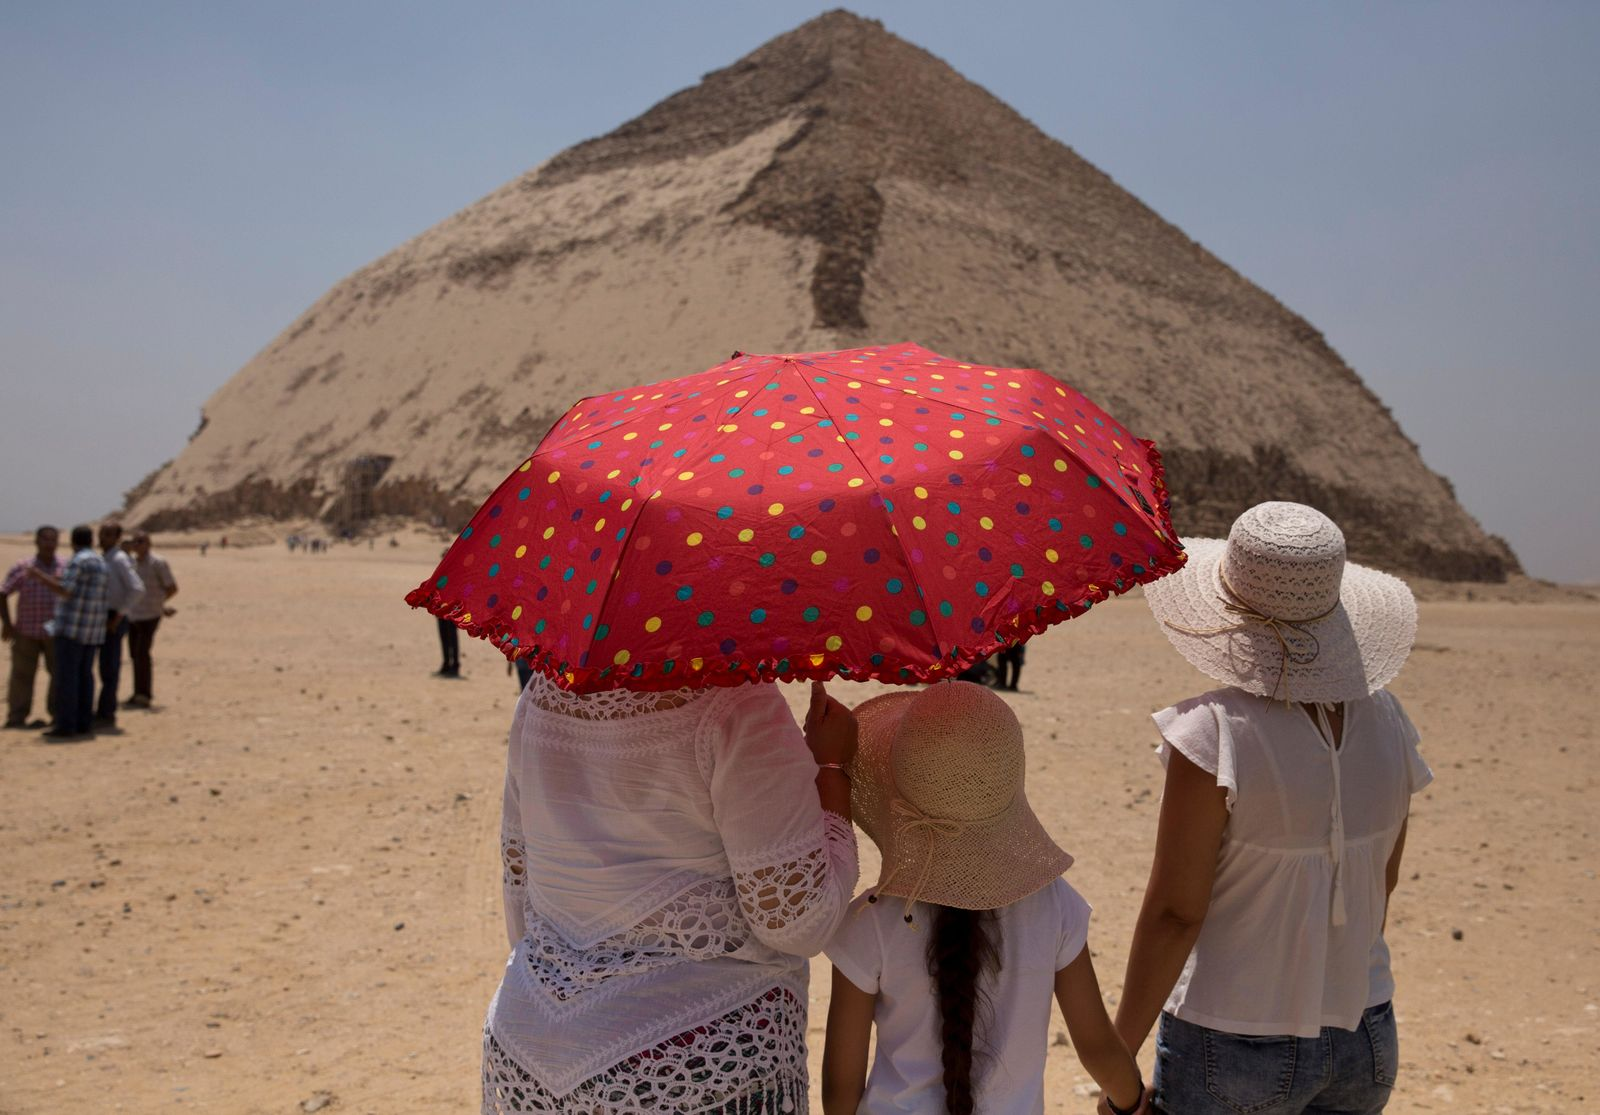 Women visit the Bent Pyramid during an during an event opening the pyramid and its satellites for visitors in Dashur, Egypt, Saturday, July 13, 2019. (AP Photo/Maya Alleruzzo)